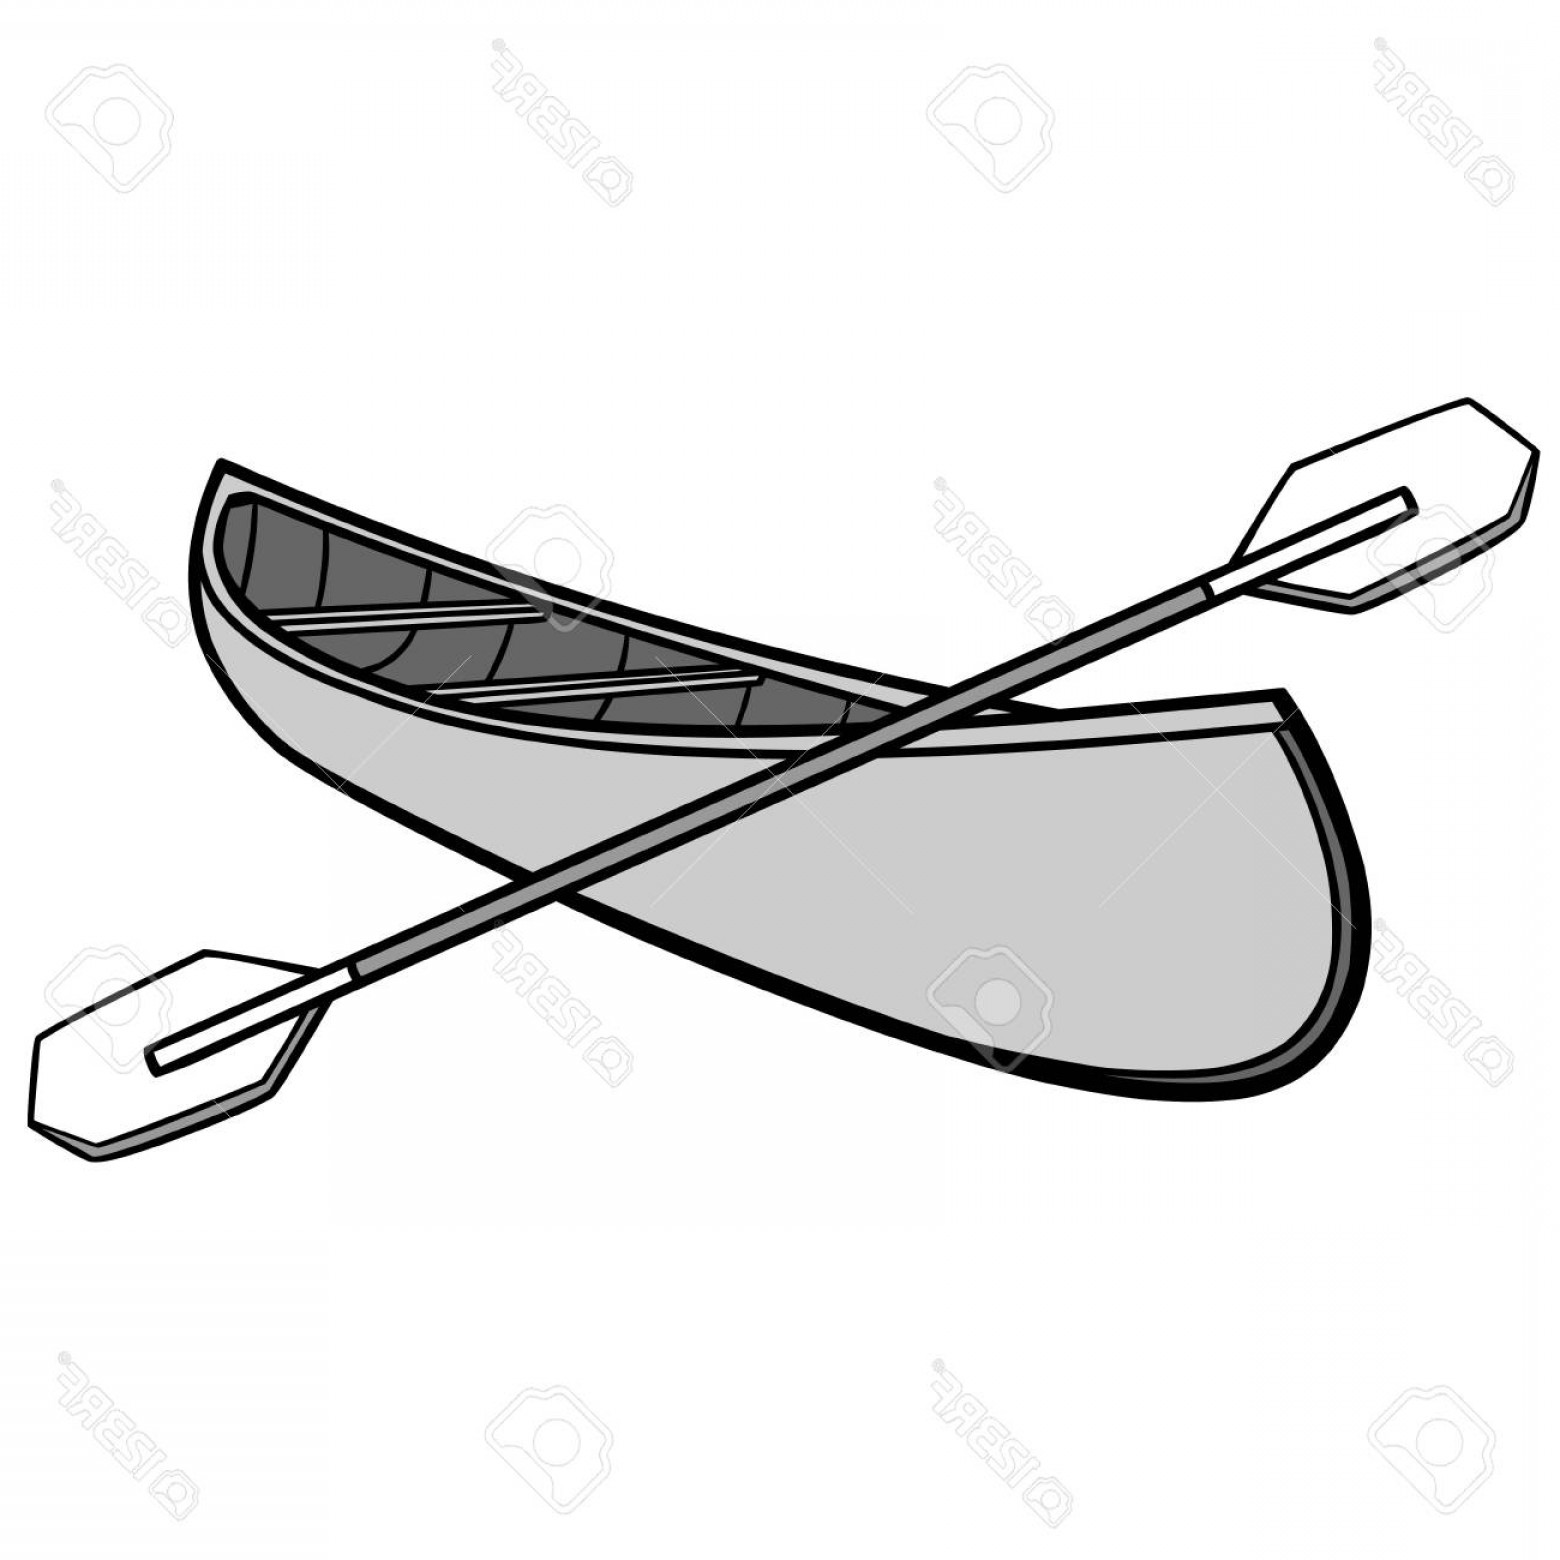 Canoe Vector: Photostock Vector Canoe And Paddles Illustration A Vector Cartoon Illustration Of A Campground Canoe And Paddles